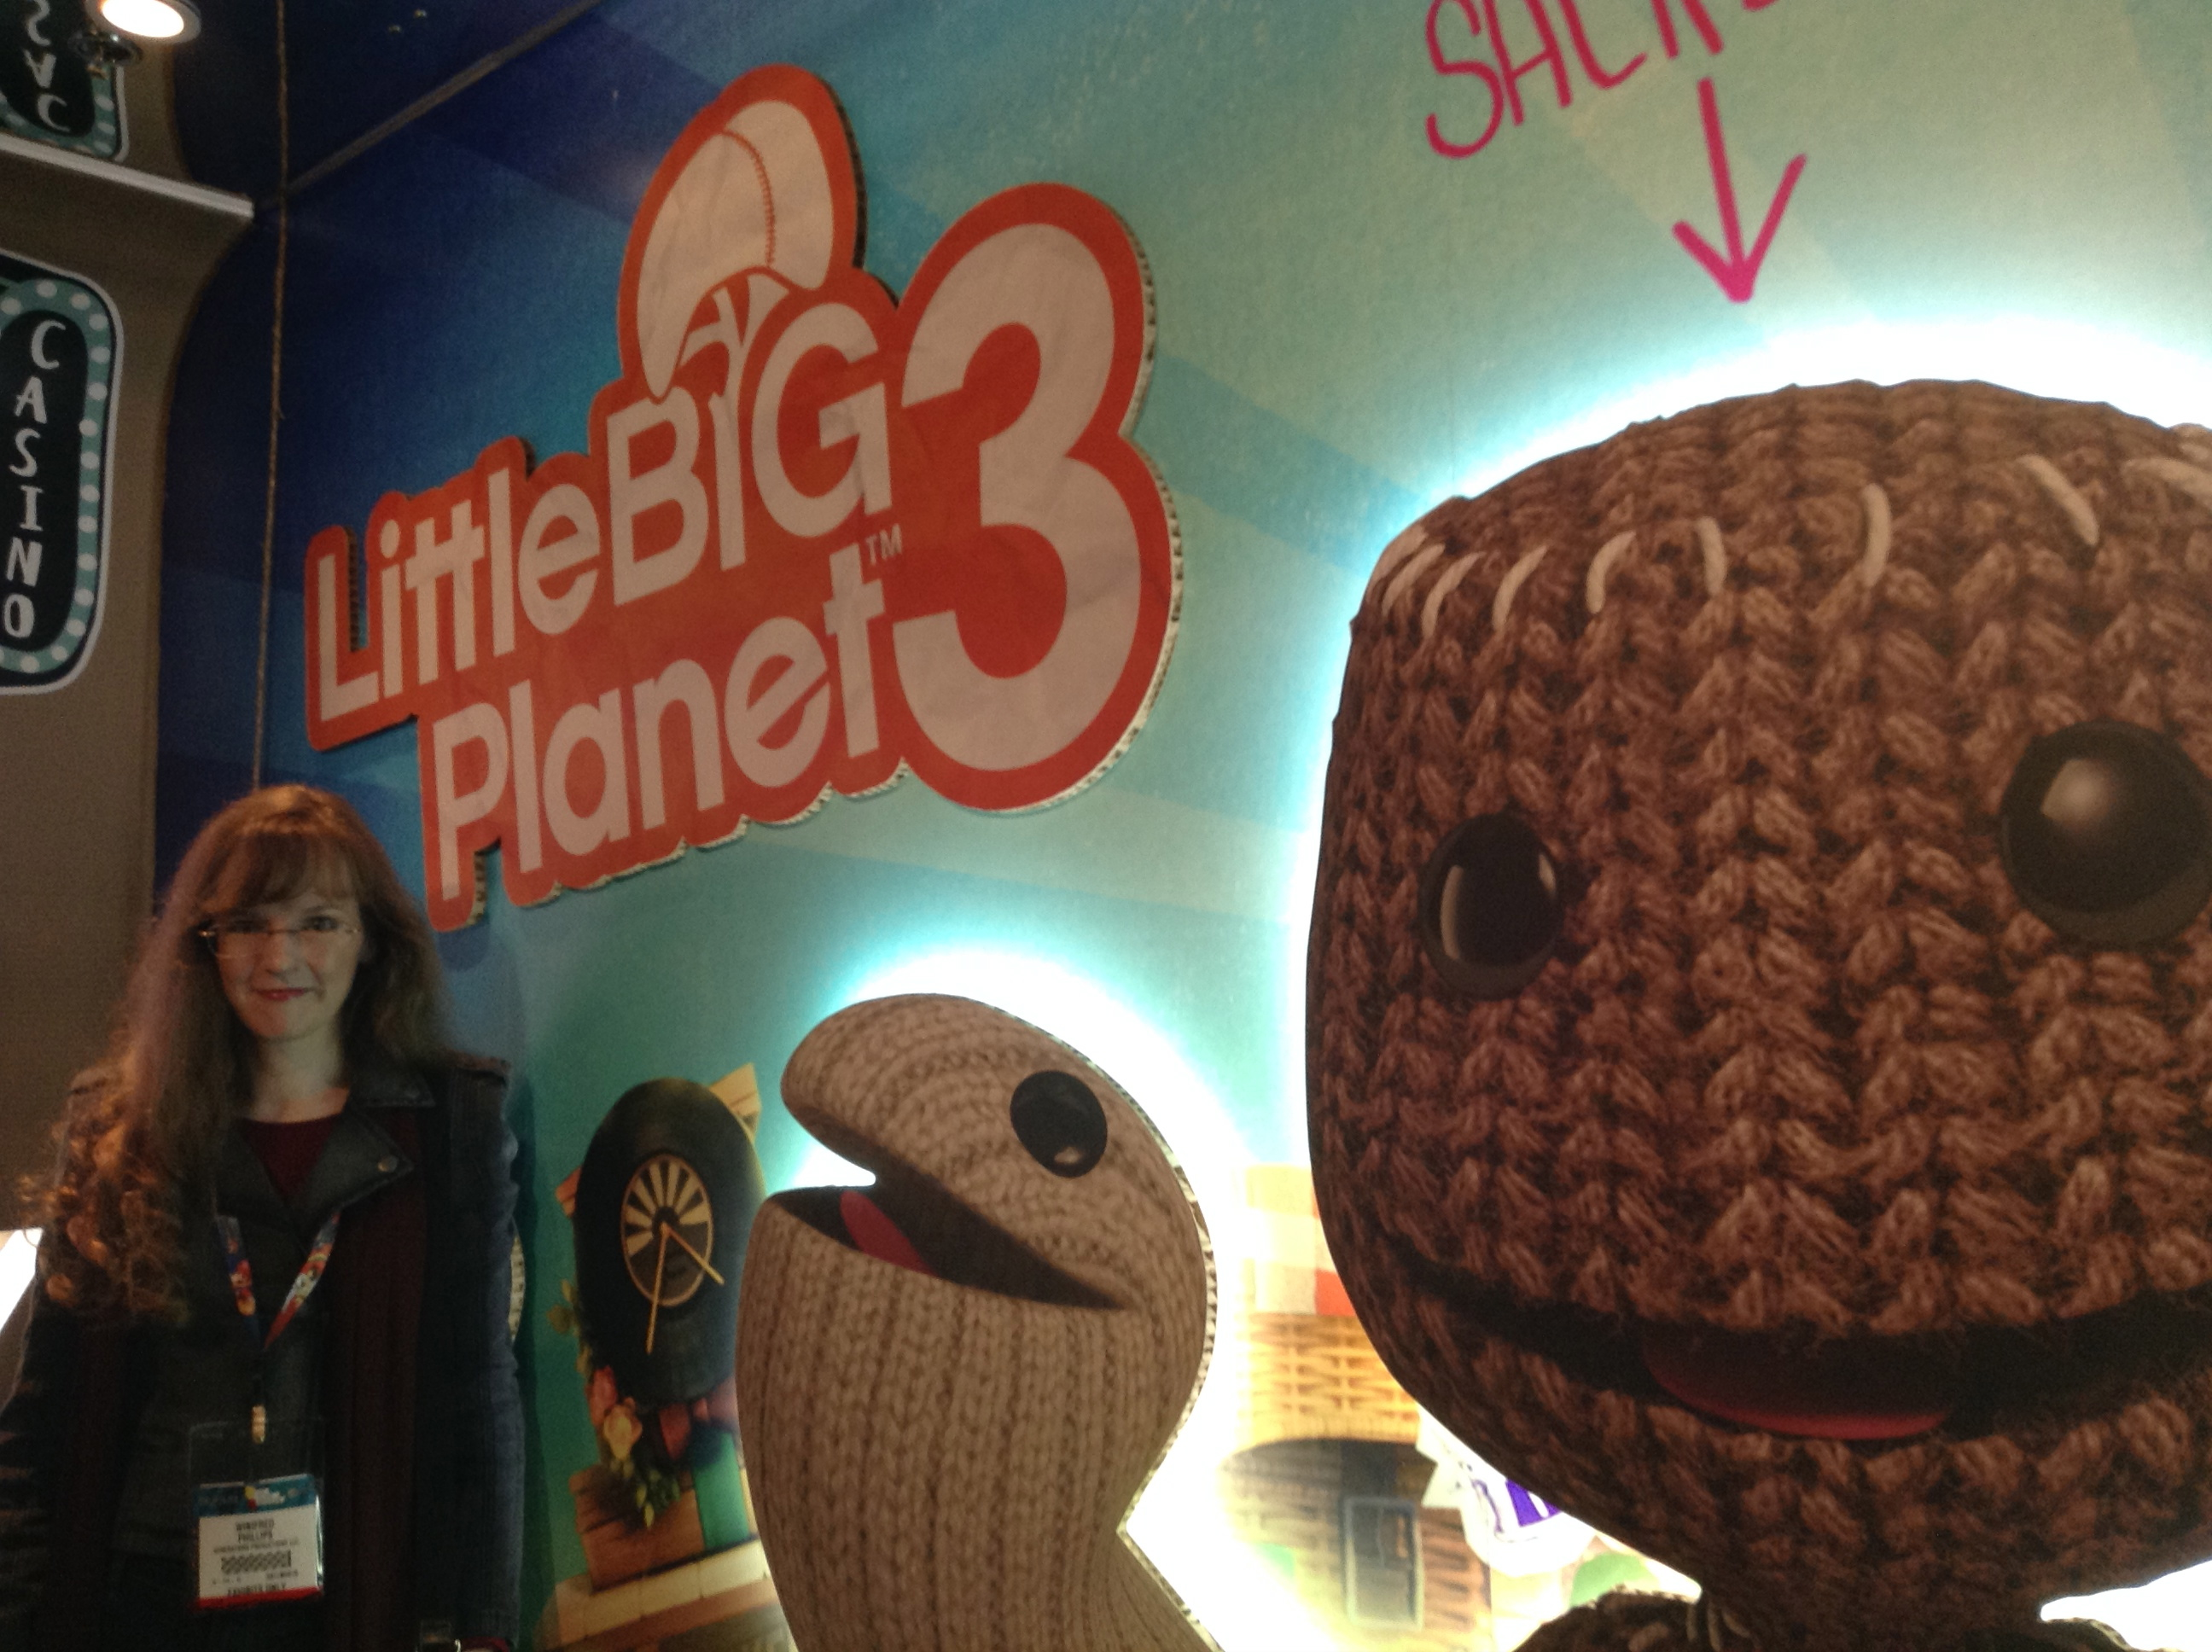 Photo of composer Winifred Phillips taken in the LittleBigPlanet 3 booth at the Electronic Entertainment Expo 2014.